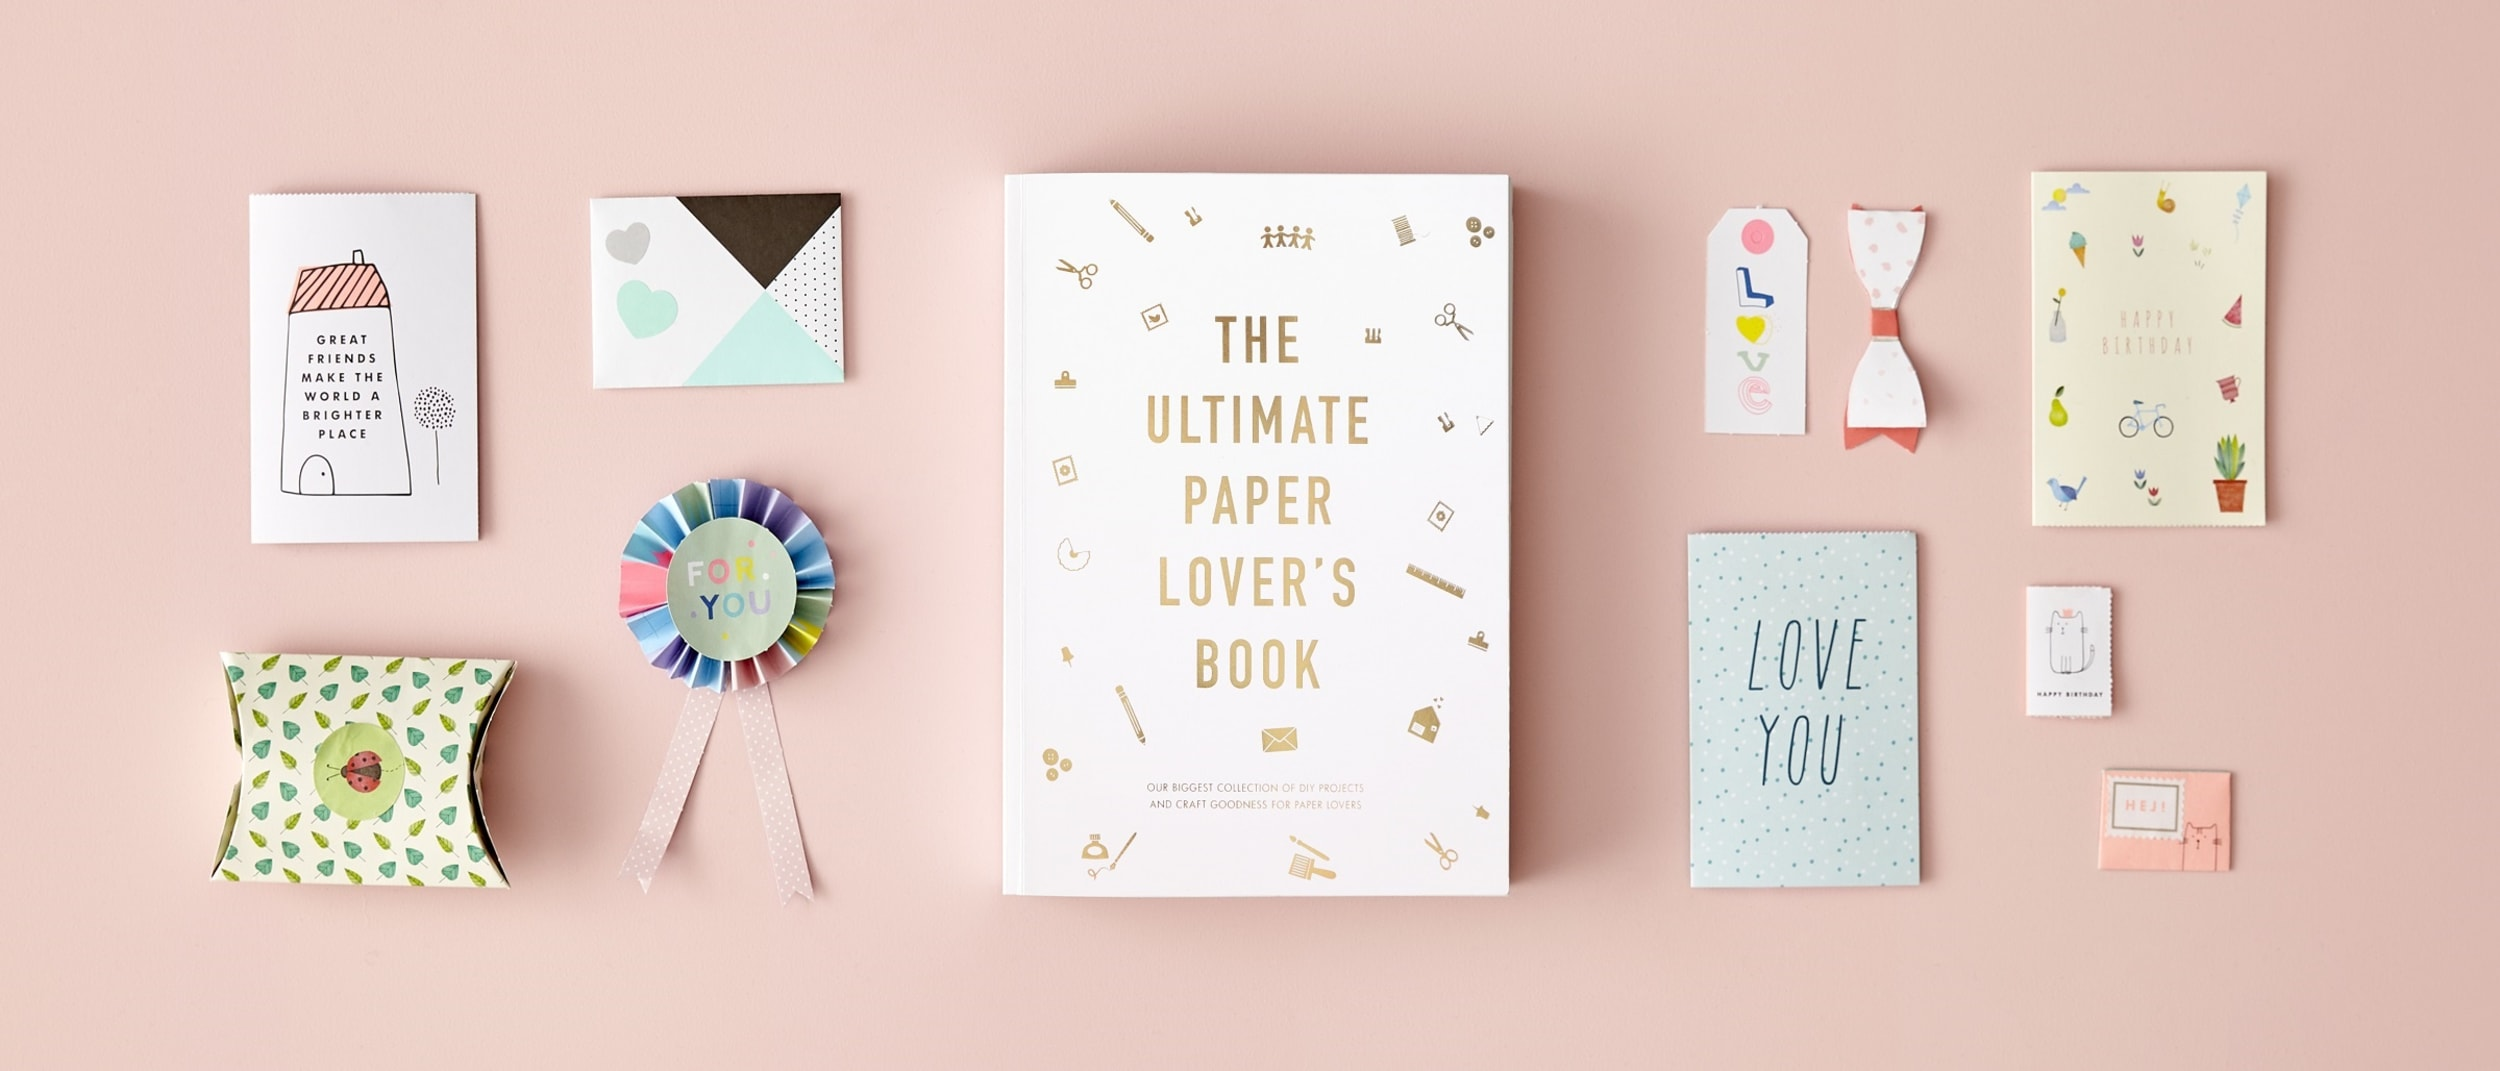 Introducing from kikki.K The Ultimate Paper Lover's Book